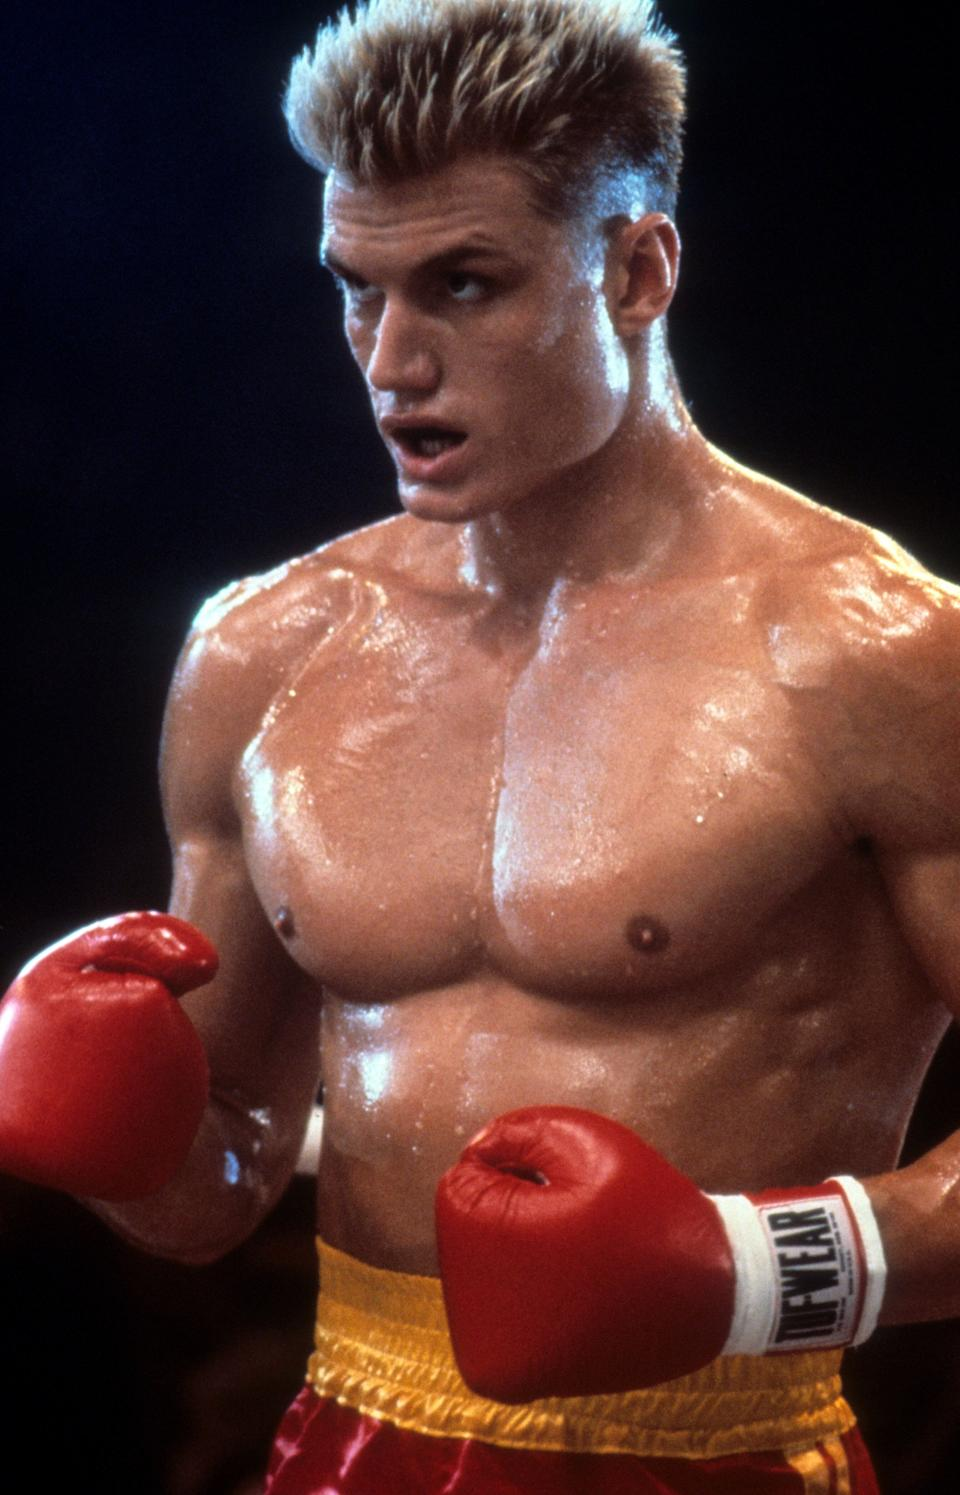 """Lundgren as Ivan Drago in a scene from """"Rocky IV."""" (Photo: United Artists via Getty Images)"""